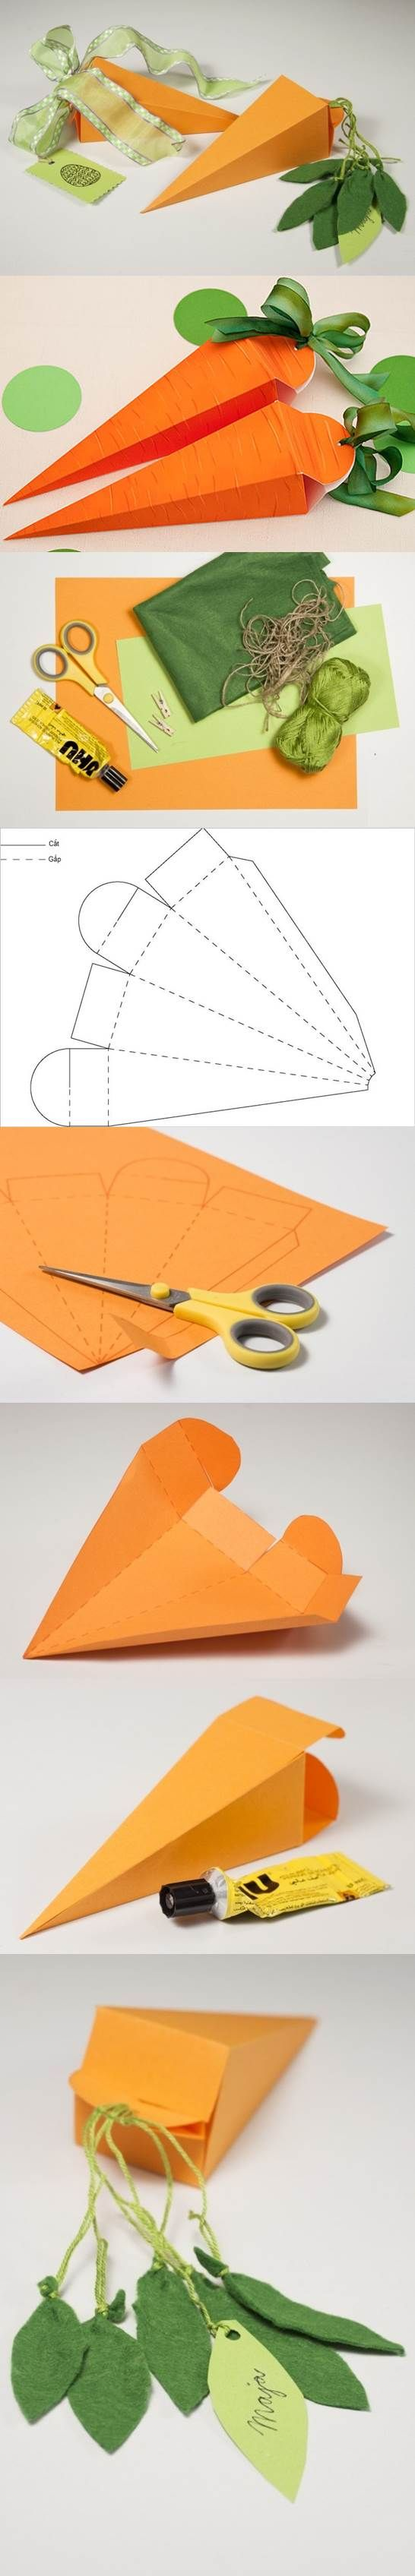 DIY Cute Carrot Shaped Gift Box | iCreativeIdeas.com Like Us on Facebook ==> https://www.facebook.com/icreativeideas